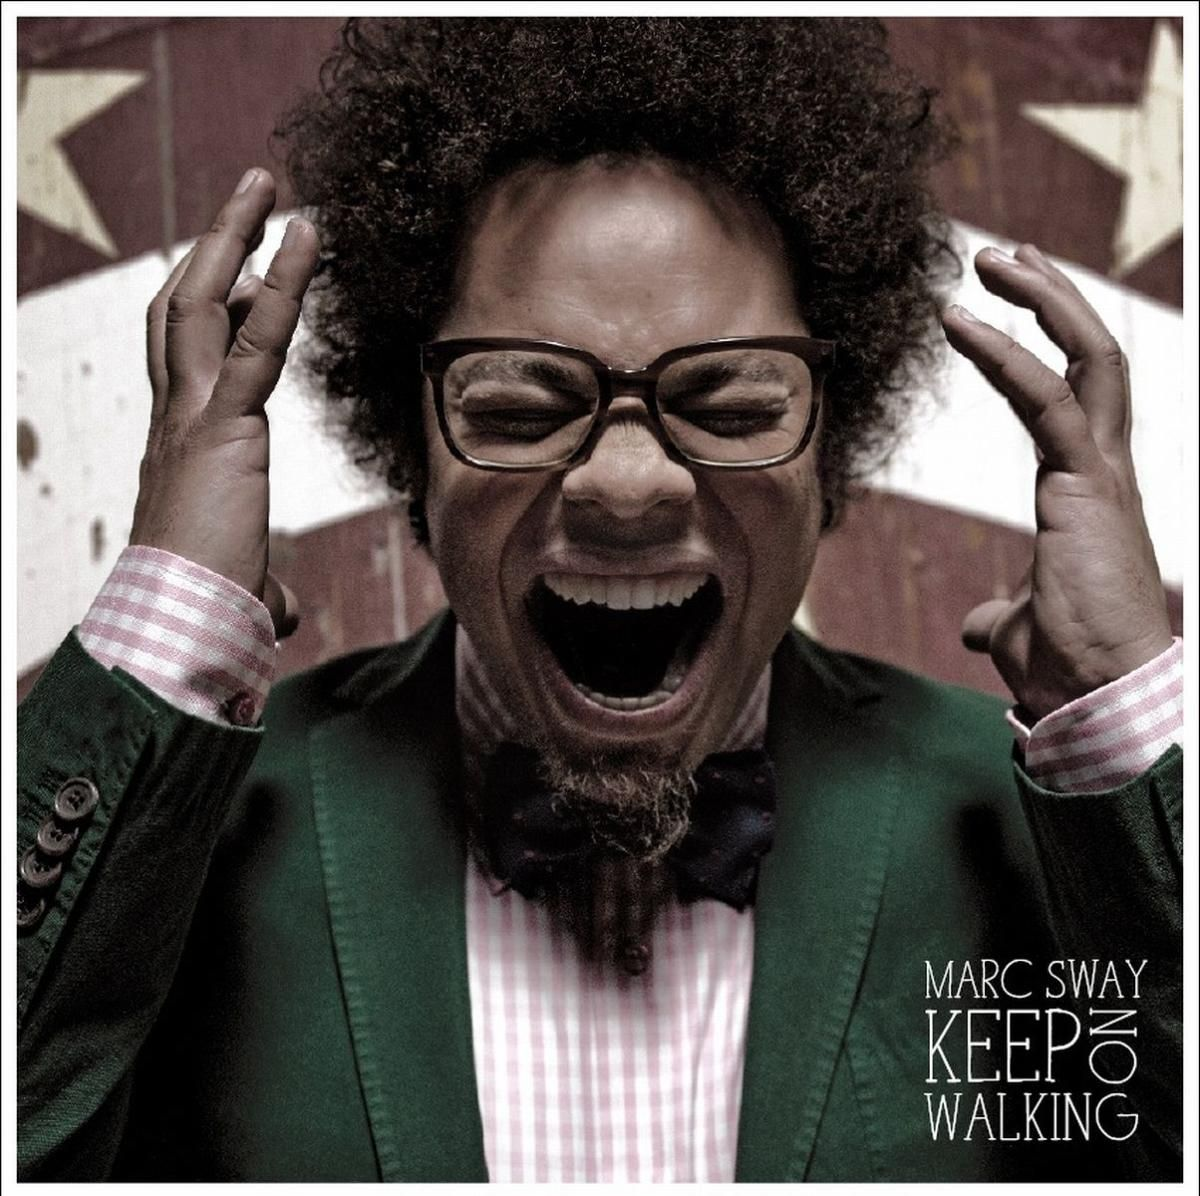 Single Cover Art Marc Sway Keep On Walking 01 2013 Music